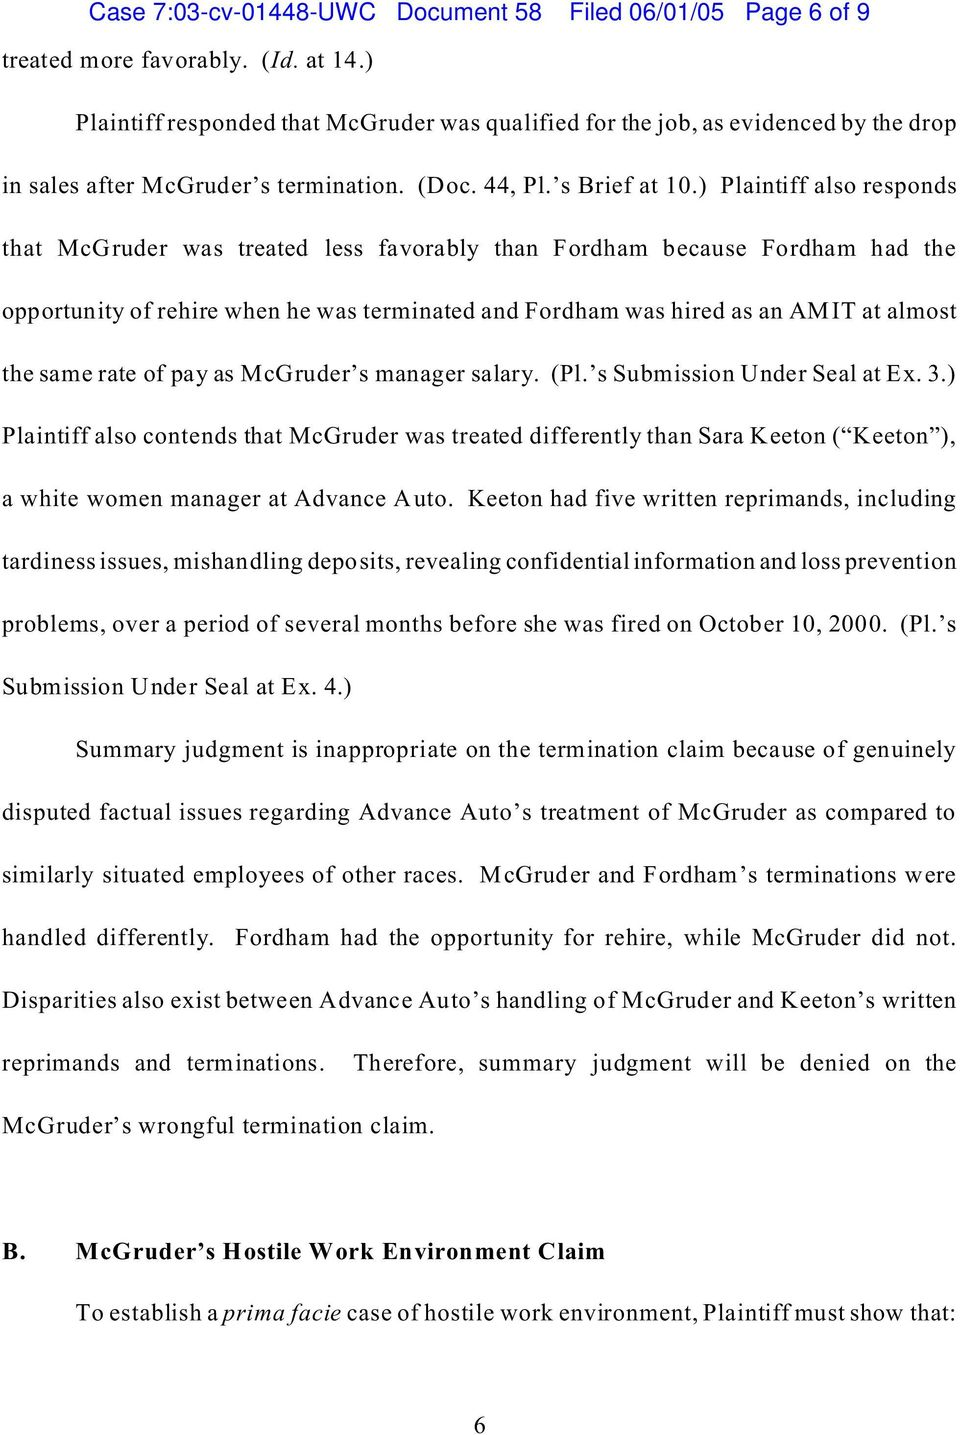 ) Plaintiff also responds that McGruder was treated less favorably than Fordham because Fordham had the opportunity of rehire when he was terminated and Fordham was hired as an AMIT at almost the